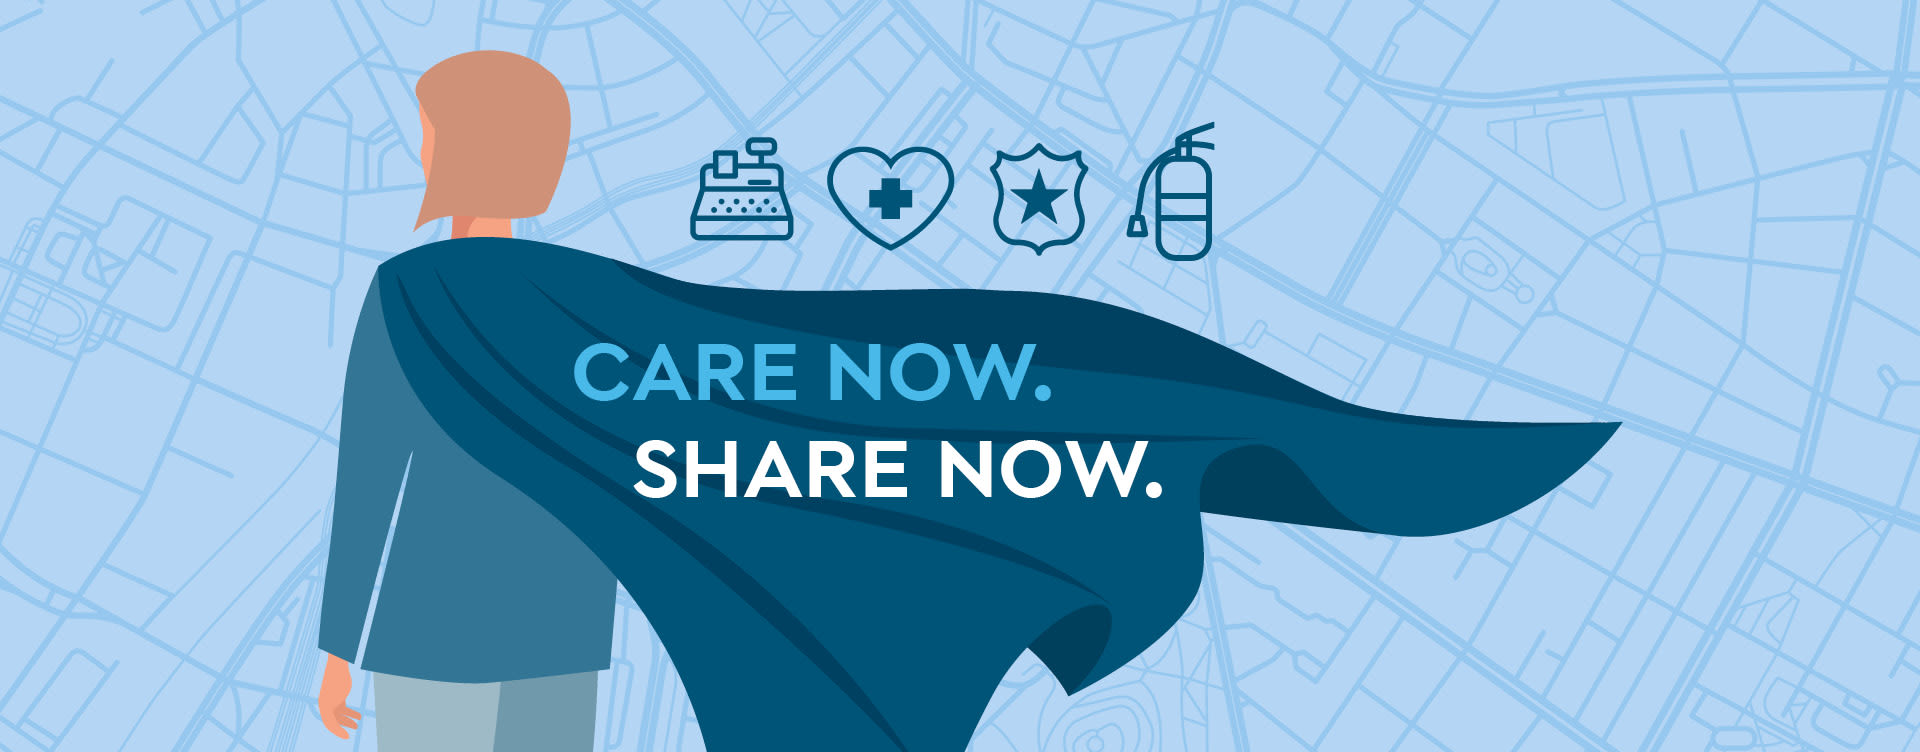 CARE NOW. SHARE NOW.